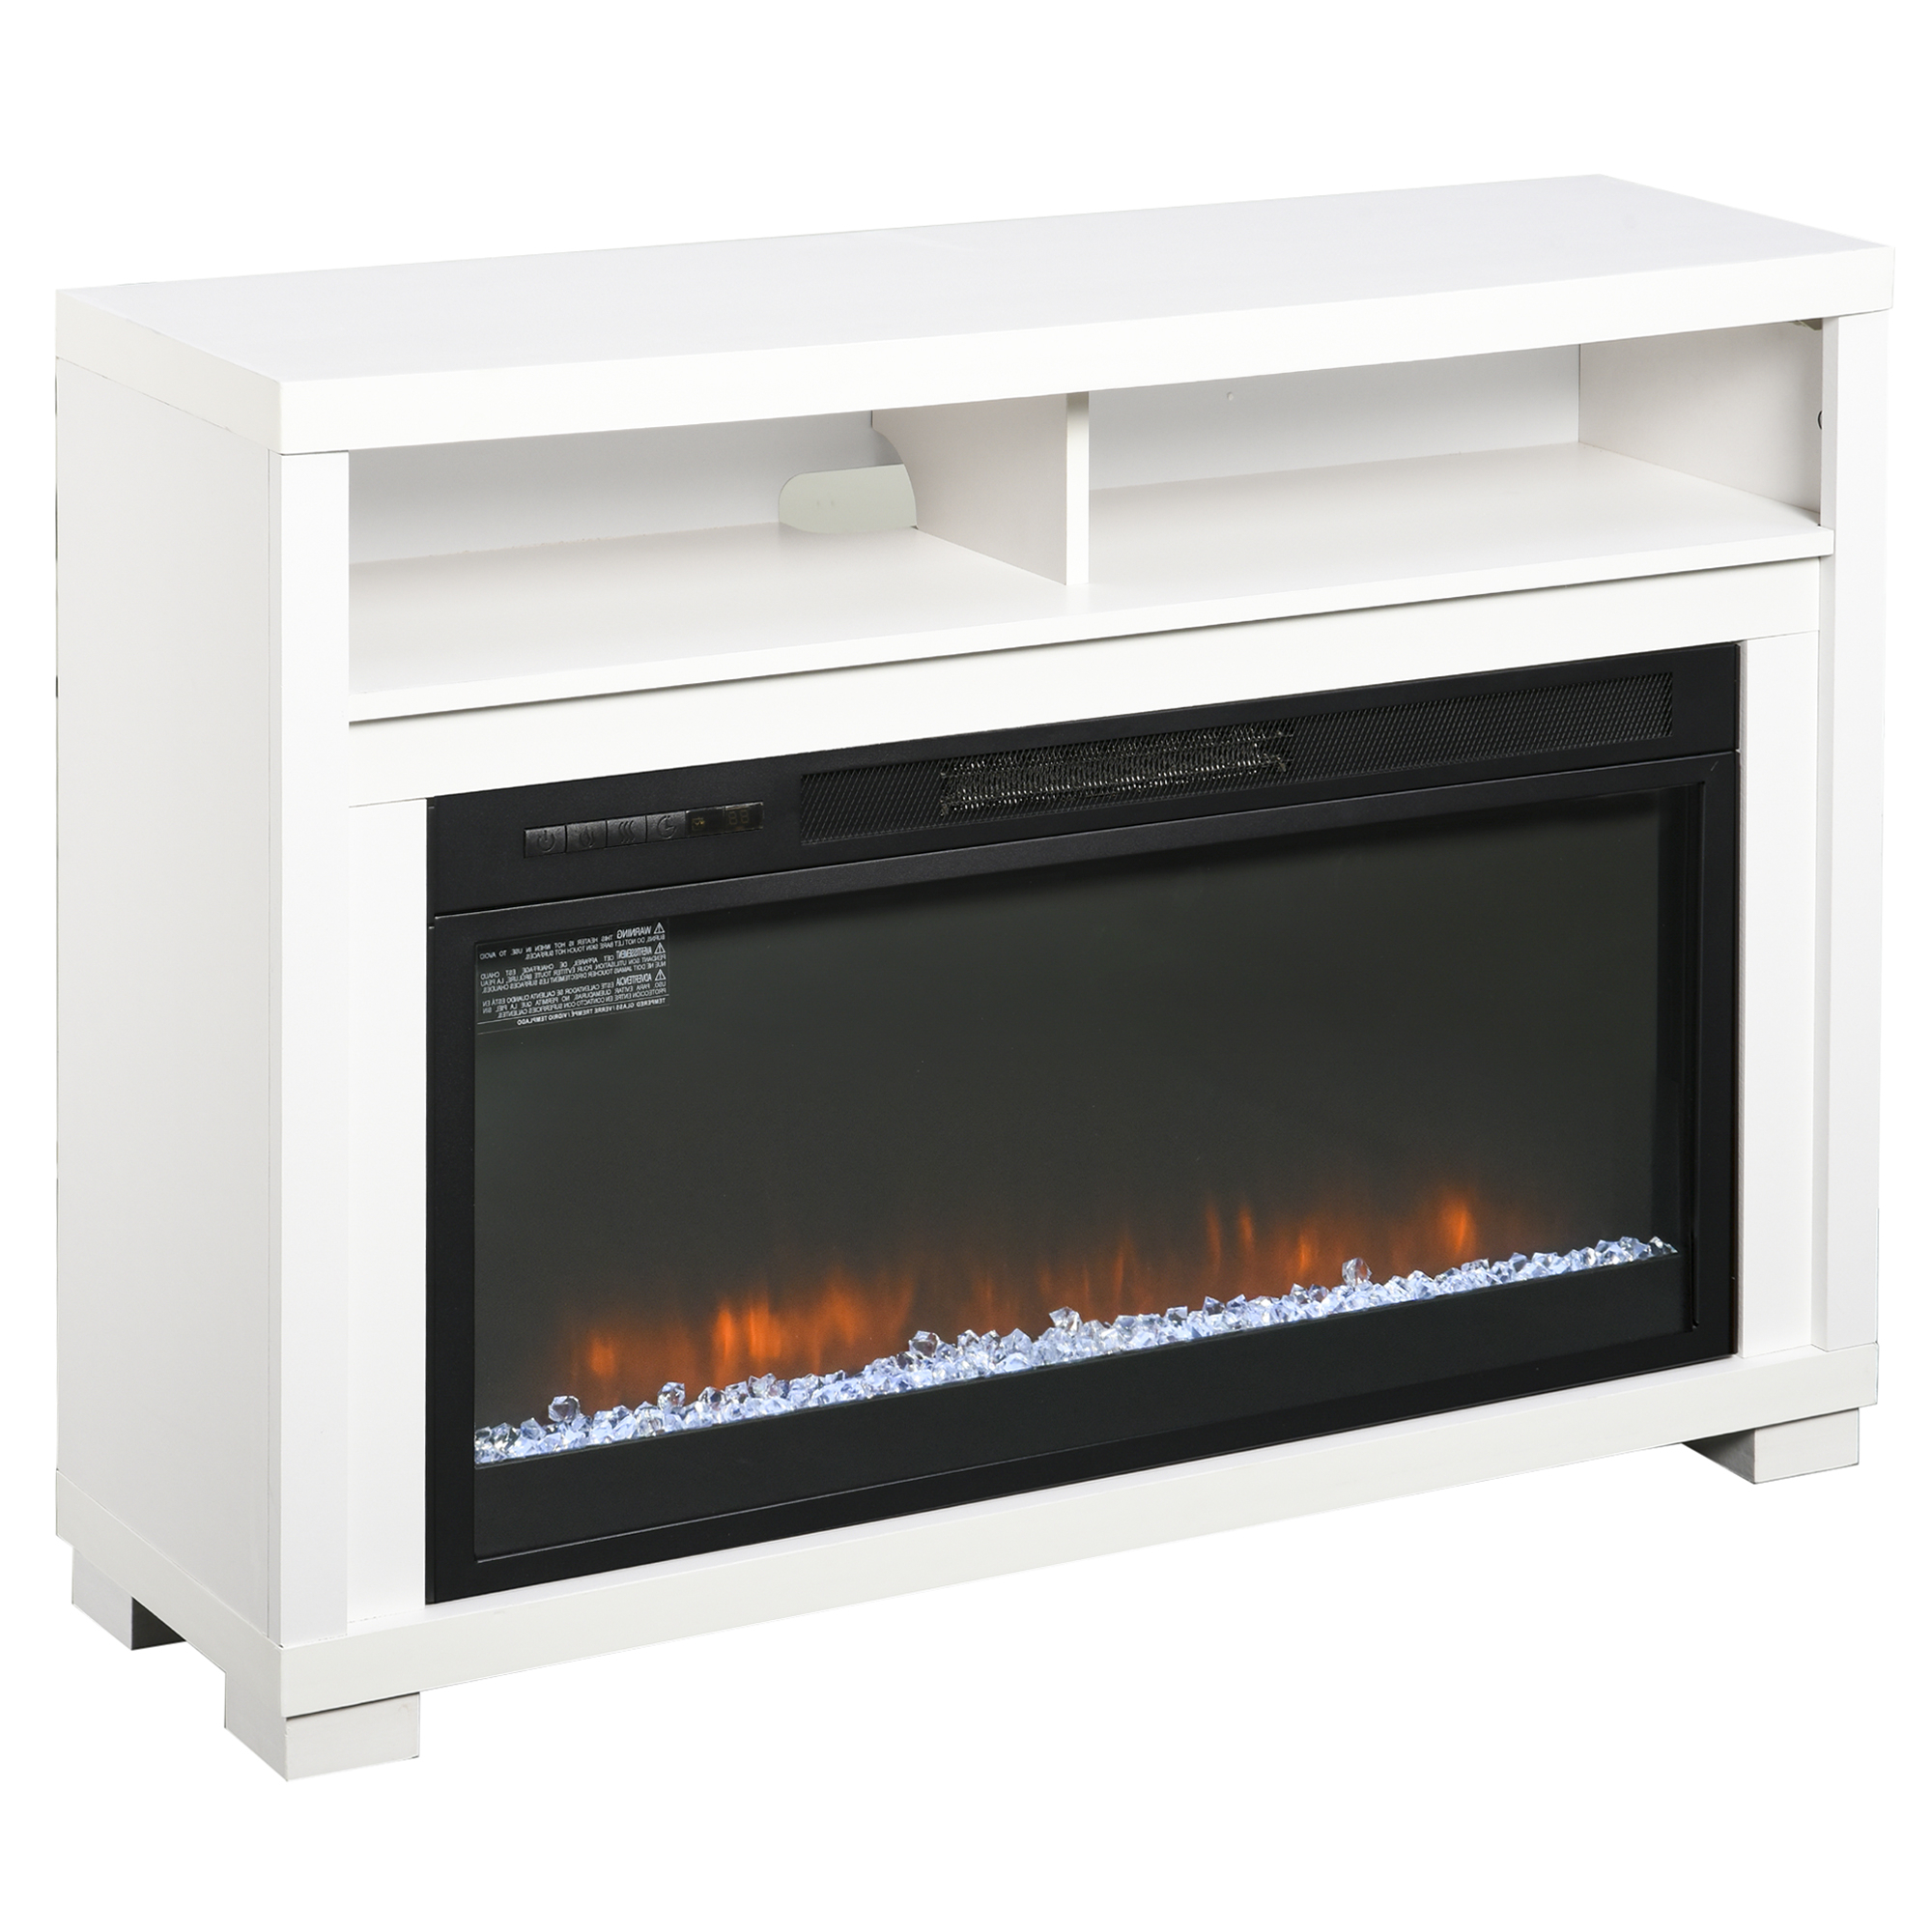 Homcom Multifunction Electric Fireplace Tv Stand With Pertaining To Tv Stands With Cable Management (View 18 of 20)